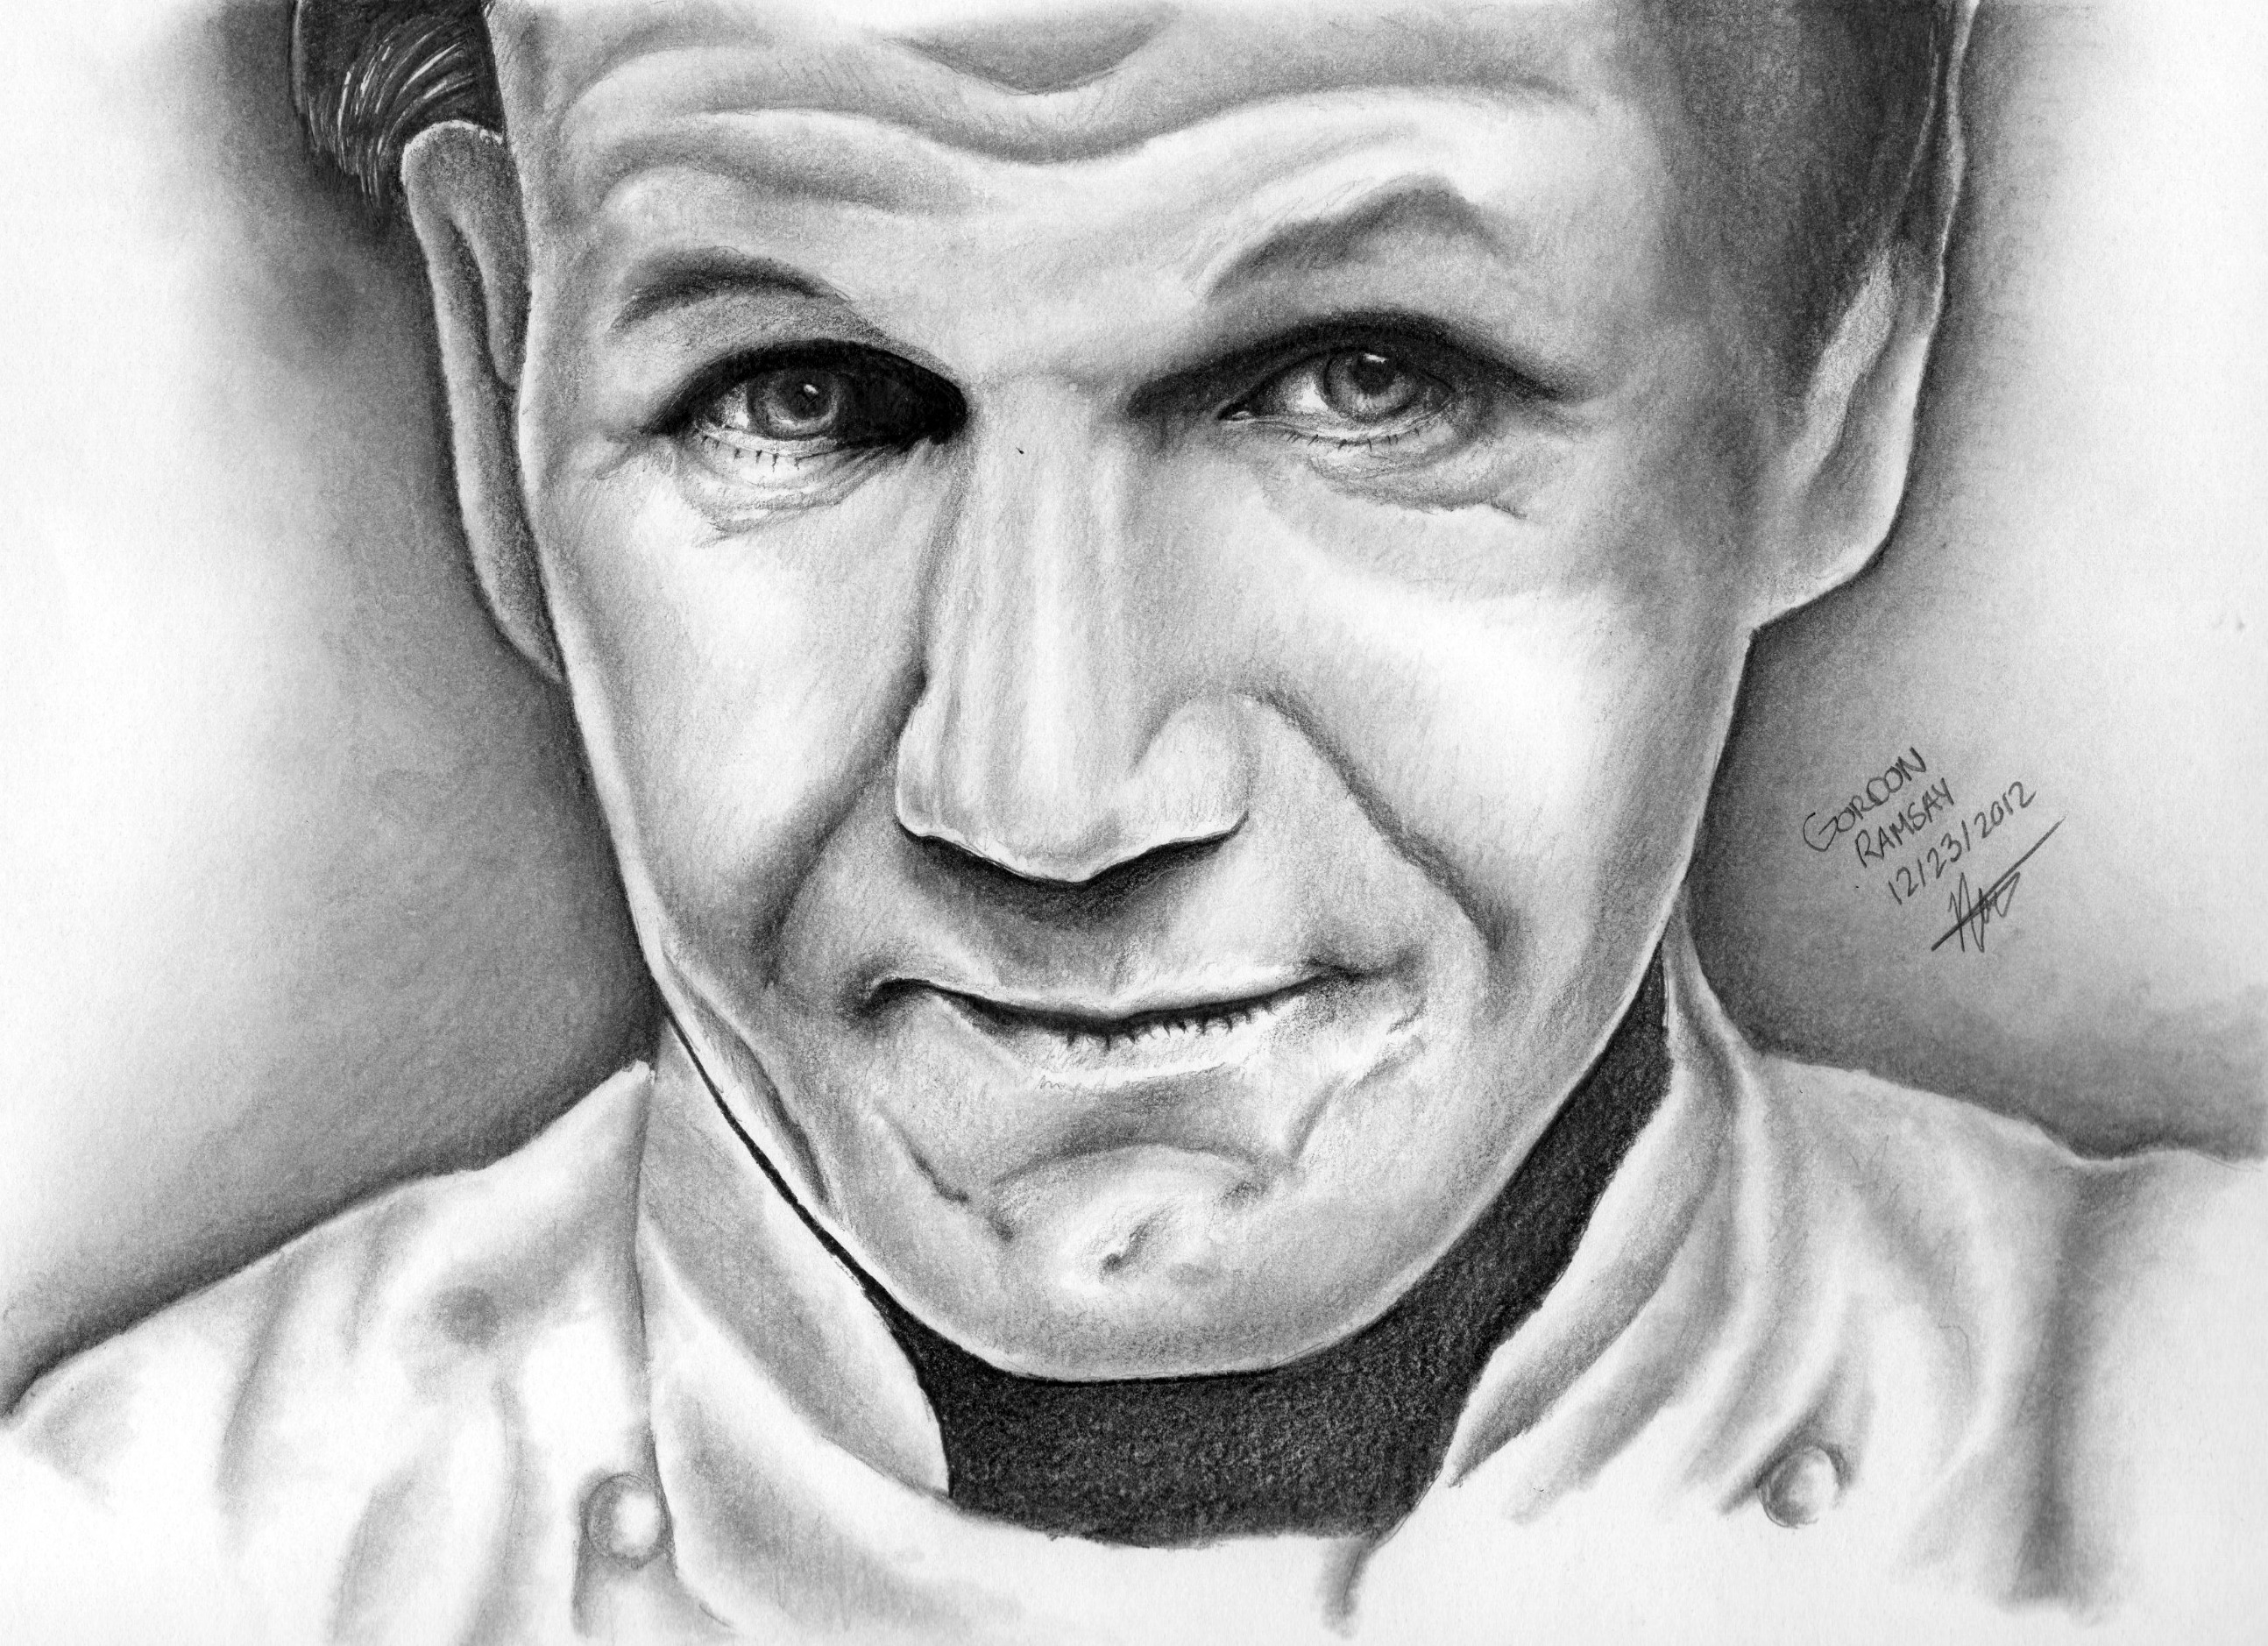 Gordon Ramsay Wallpapers Images Photos Pictures Backgrounds 2588x1878